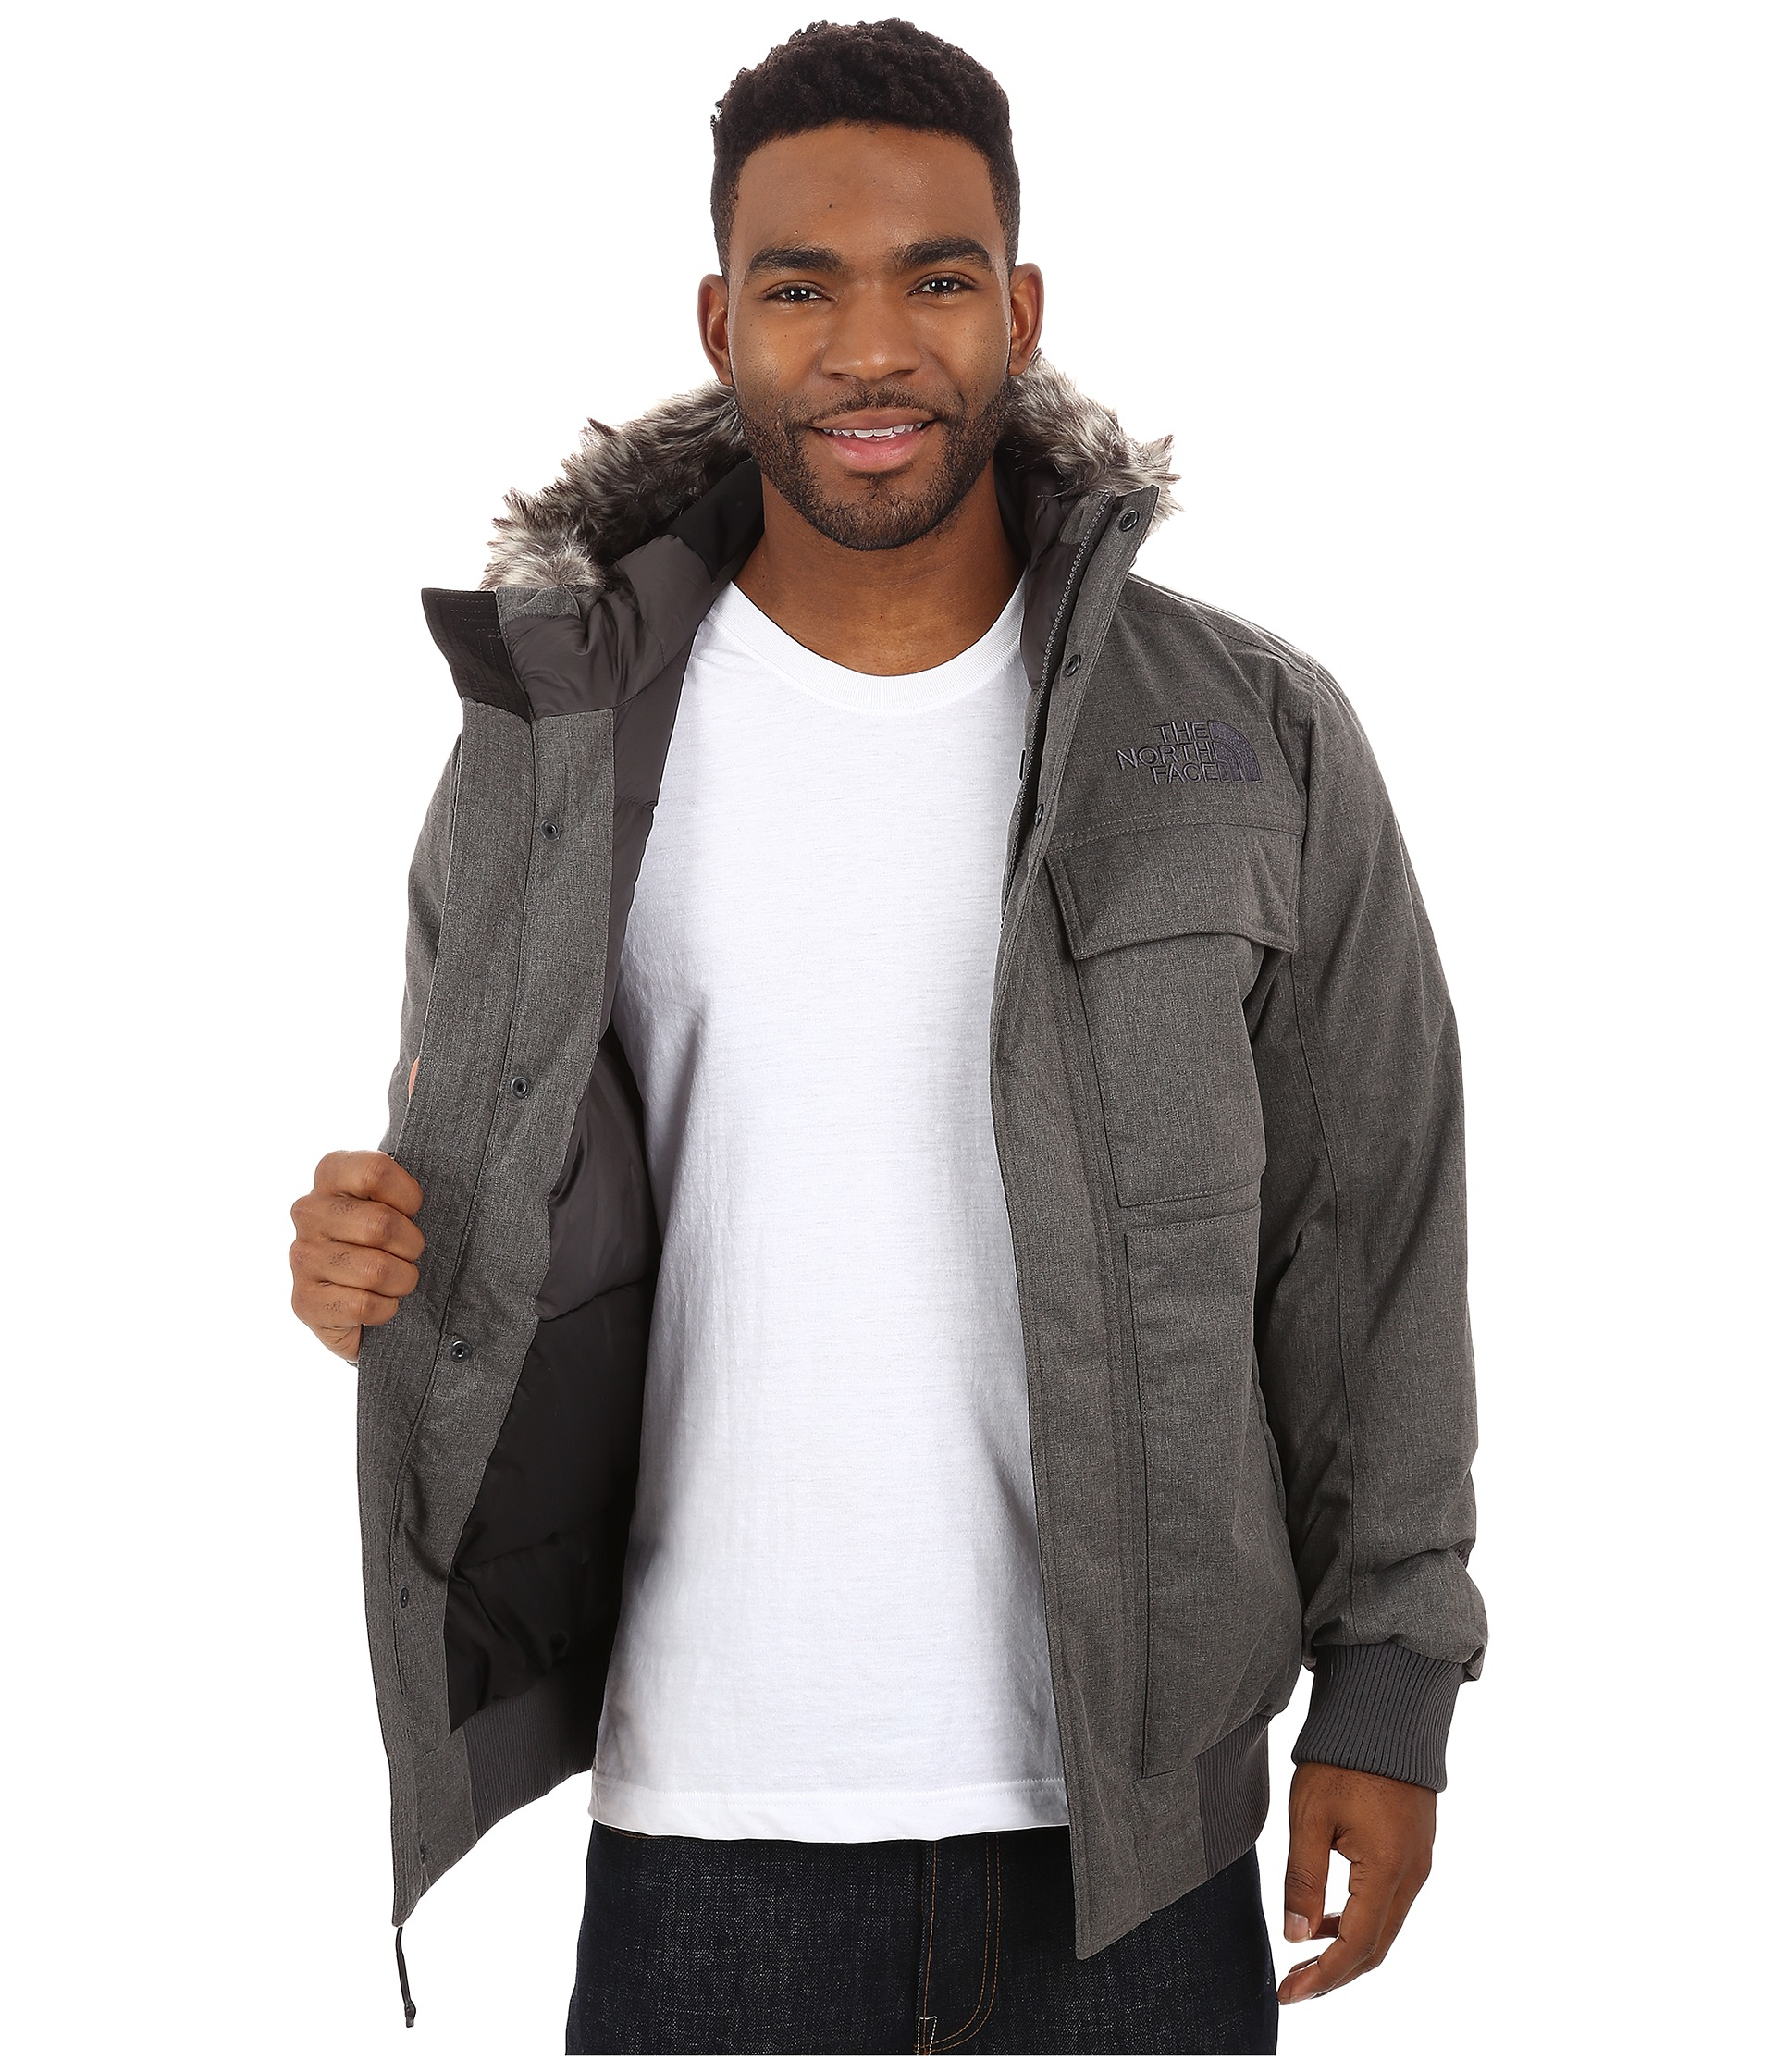 ab0bf2af1e238 ... brown field heather mens clothing coats outerwearthe c4b85 e5a85  denmark lyst the north face gotham jacket ii in gray for men 42a2f 11b24 ...